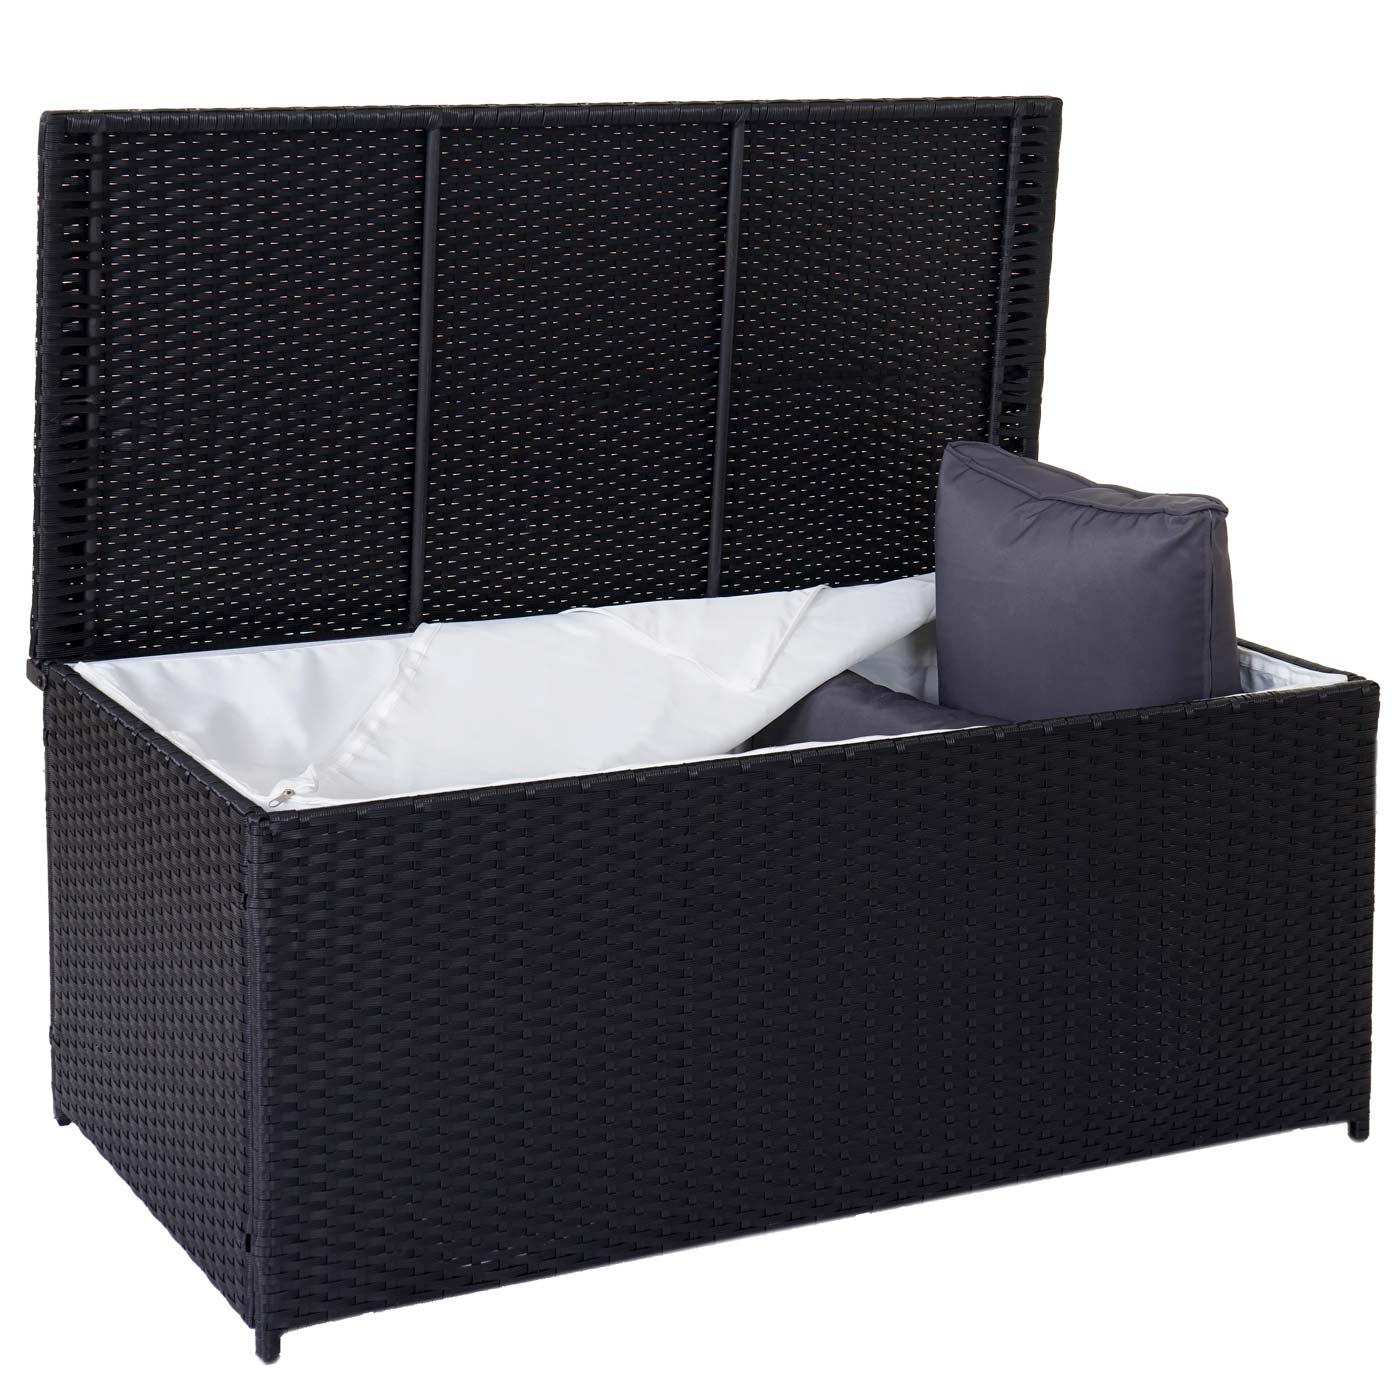 poly rattan kissenbox barry truhe auflagenbox gartenbox 290l schwarz. Black Bedroom Furniture Sets. Home Design Ideas